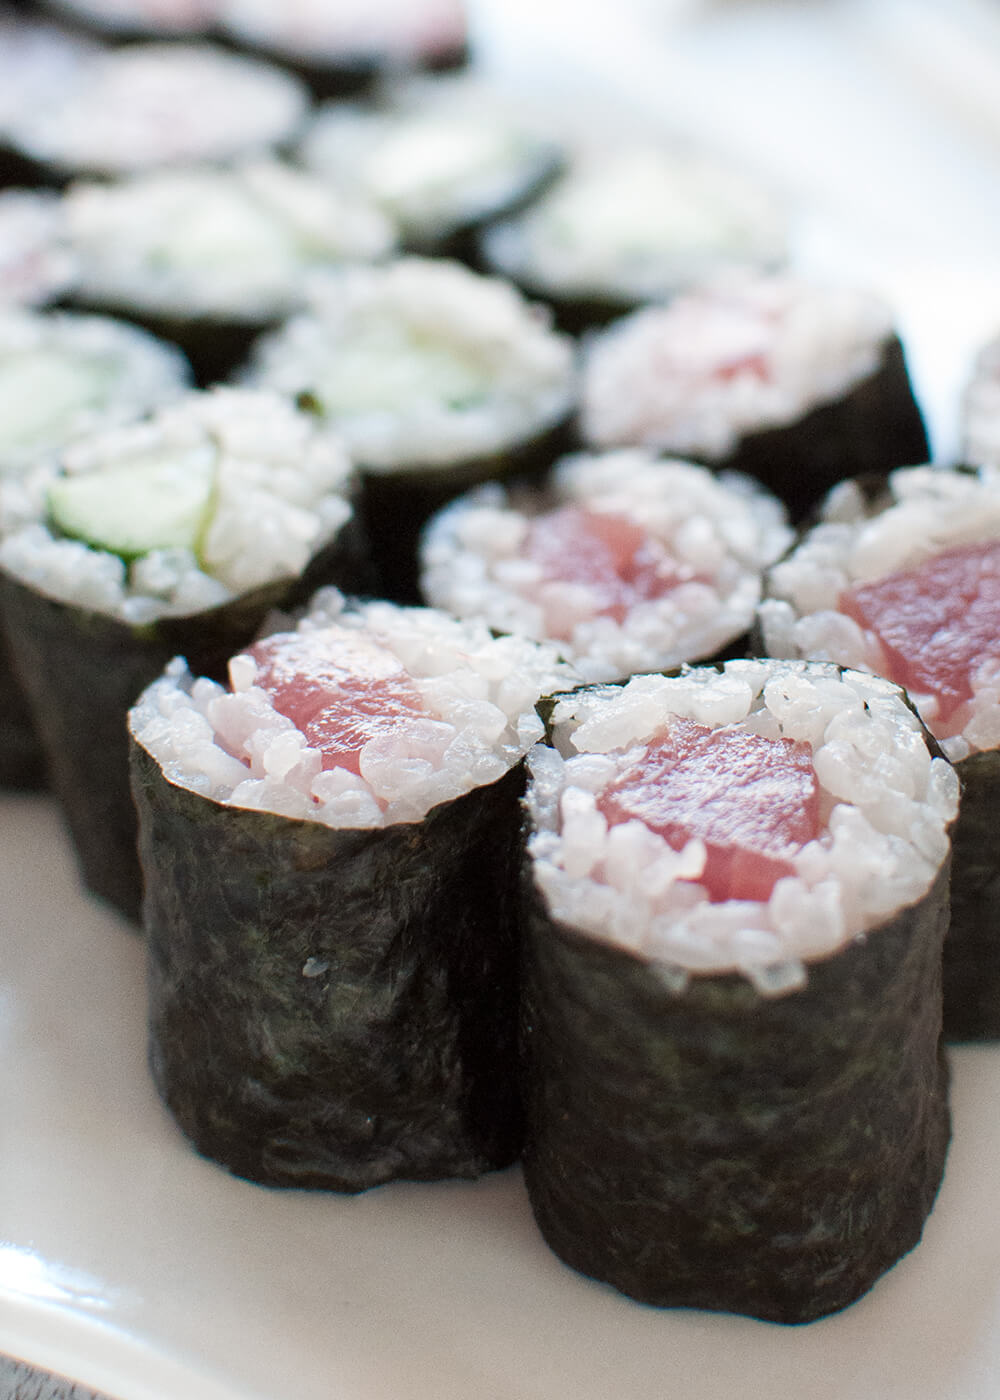 Sushi rolls are becoming a popular healthy take-away food in Australia. Most of them are made as large thick rolls, but the sushi rolls made at traditional sushi restaurants are thin, tiny rolls just perfect for finger food.